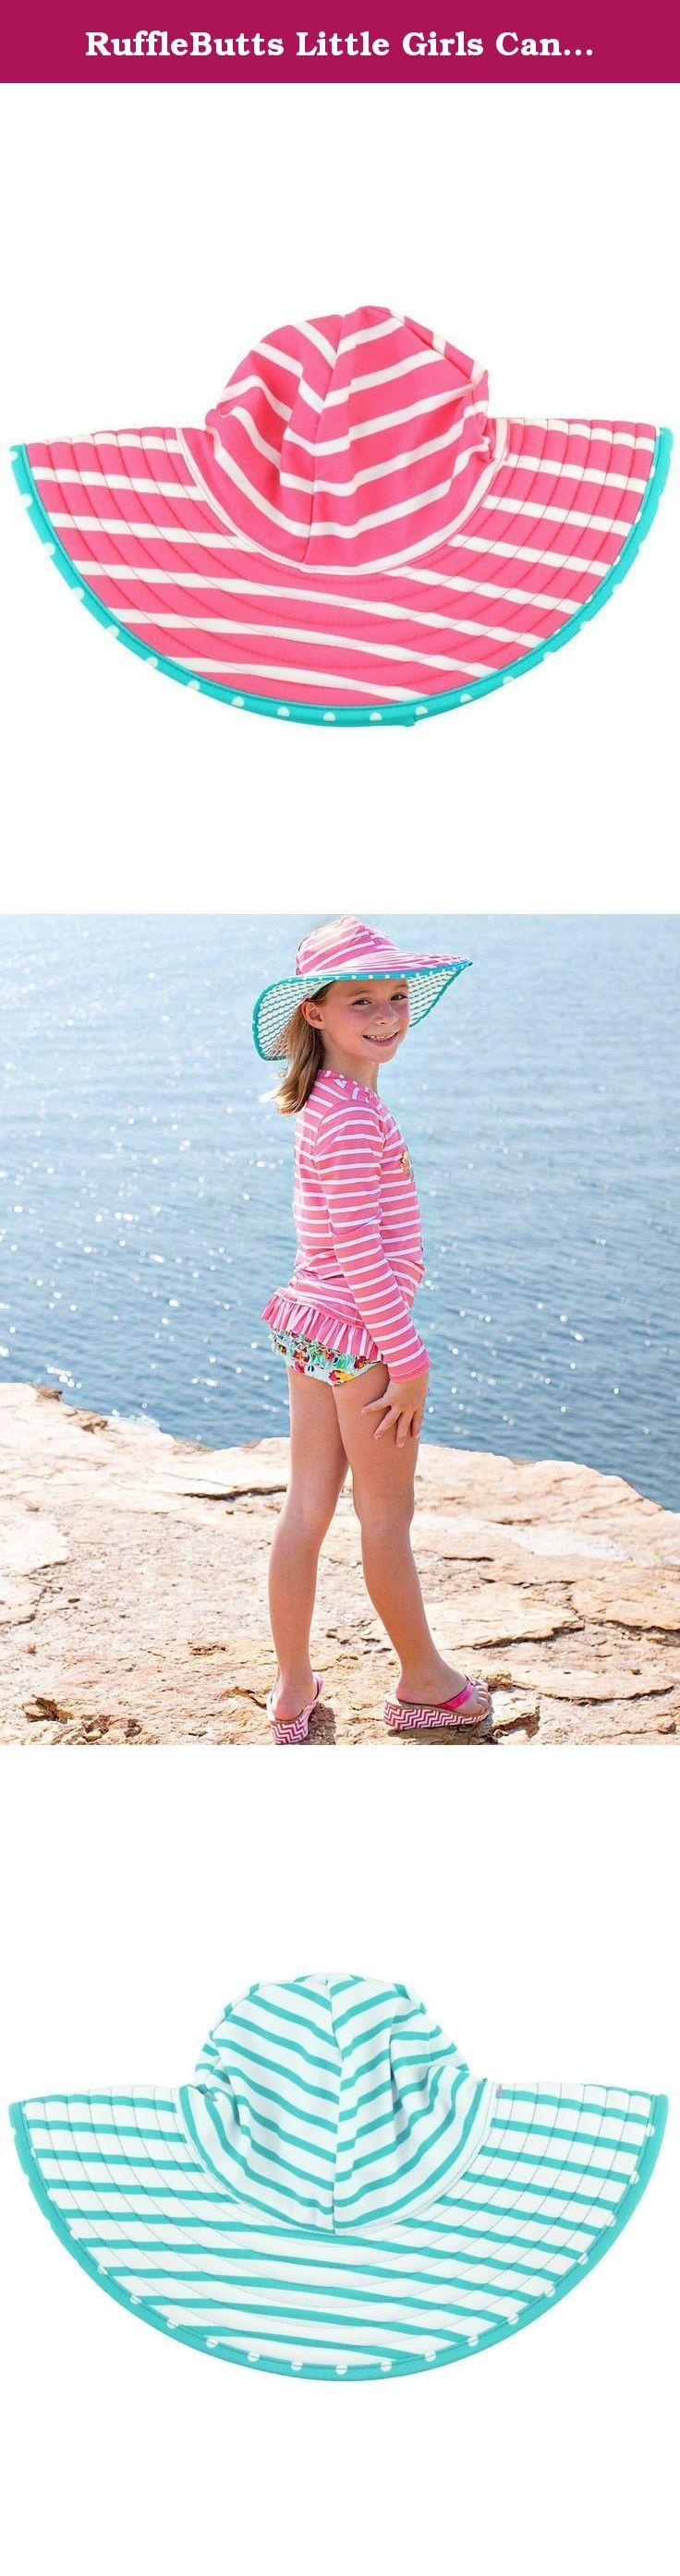 RuffleButts Little Girls Candy & Aqua Striped Reversible Wide Brim Swim Hat - Candy - 3T-6. Keep your little girl protected from the sun in this wide-brim, swimwear sun hat. Pair with a coordinating swimsuit for a complete look for your beach baby!.